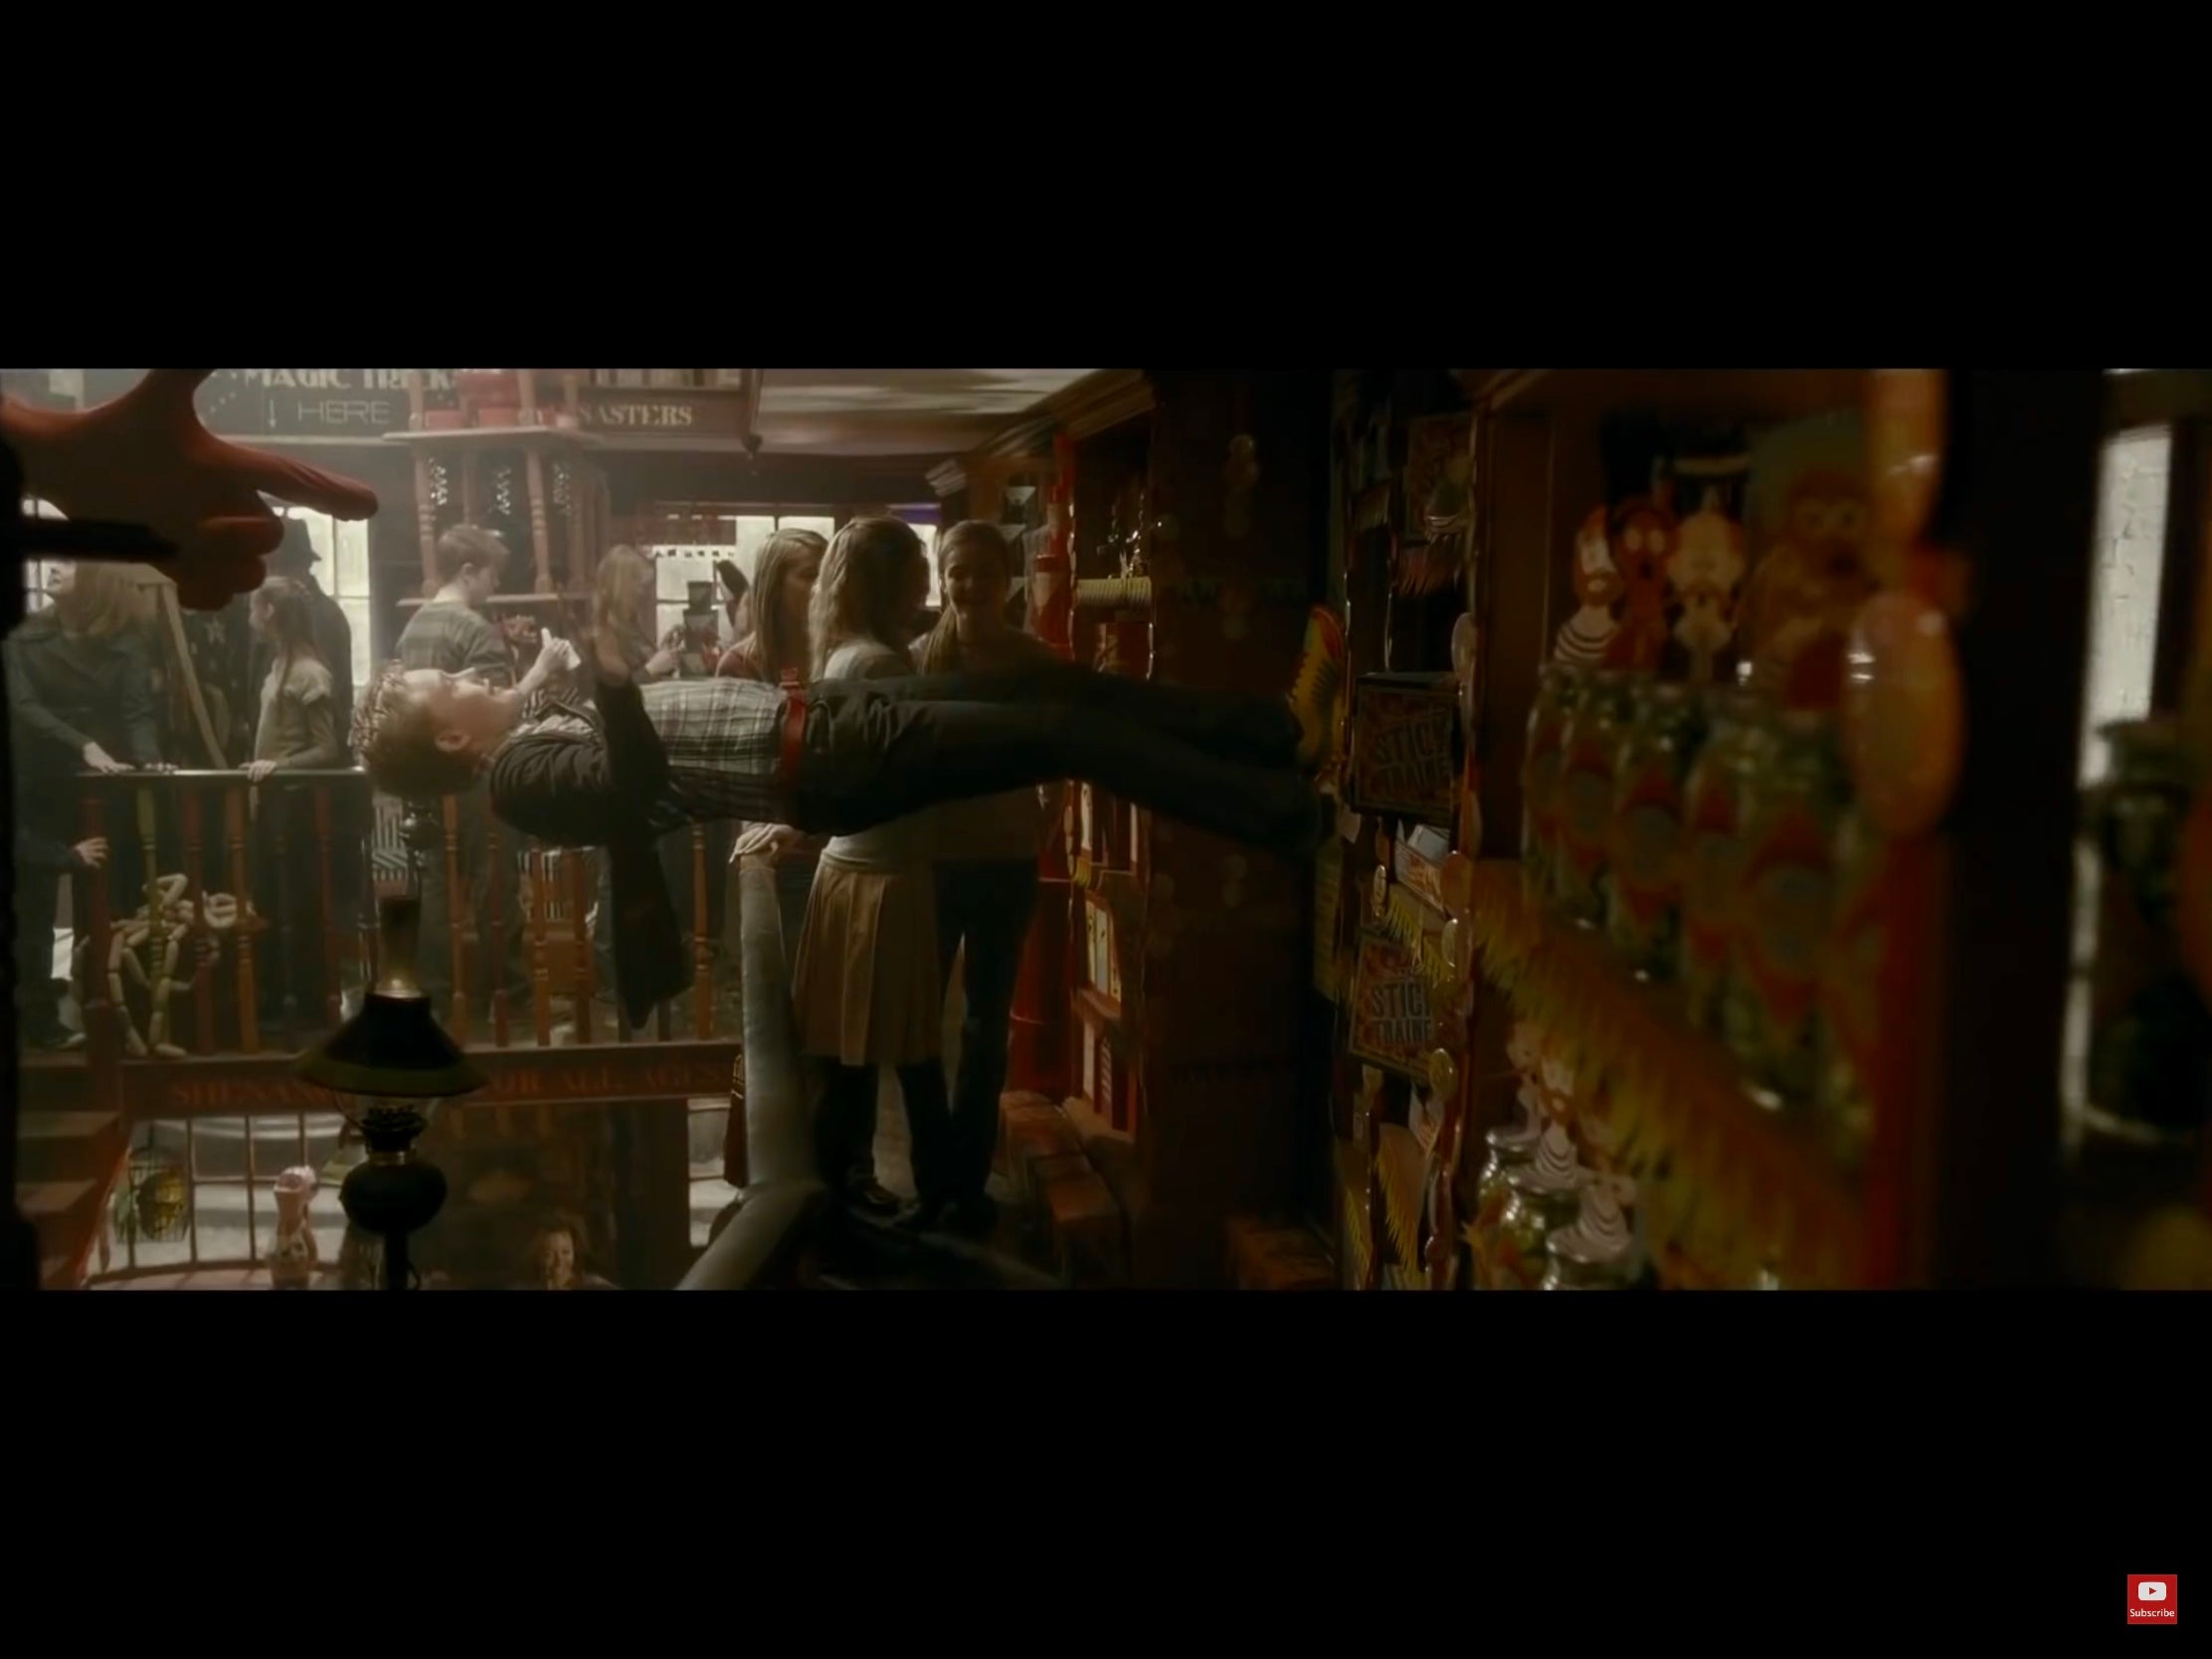 Harry Potter & The Half-Blood Prince (2009) - A 'Weasleys' Wizard Wheezes' Shop Label used in the Film